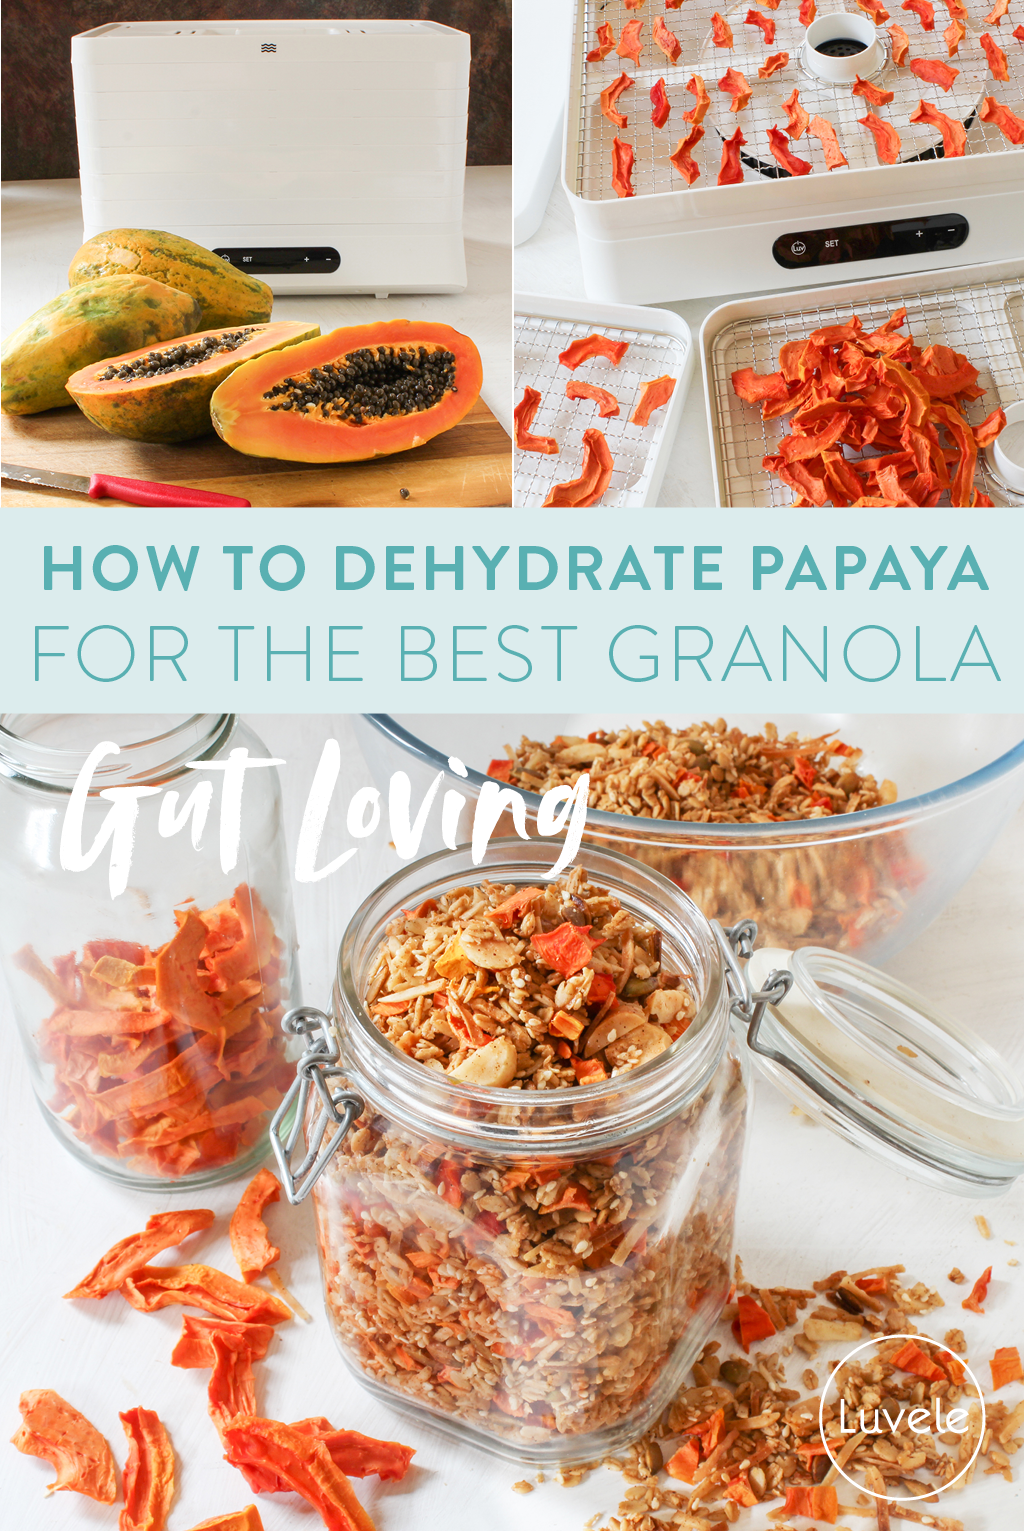 How to dehydrate papaya + papaya granola recipe